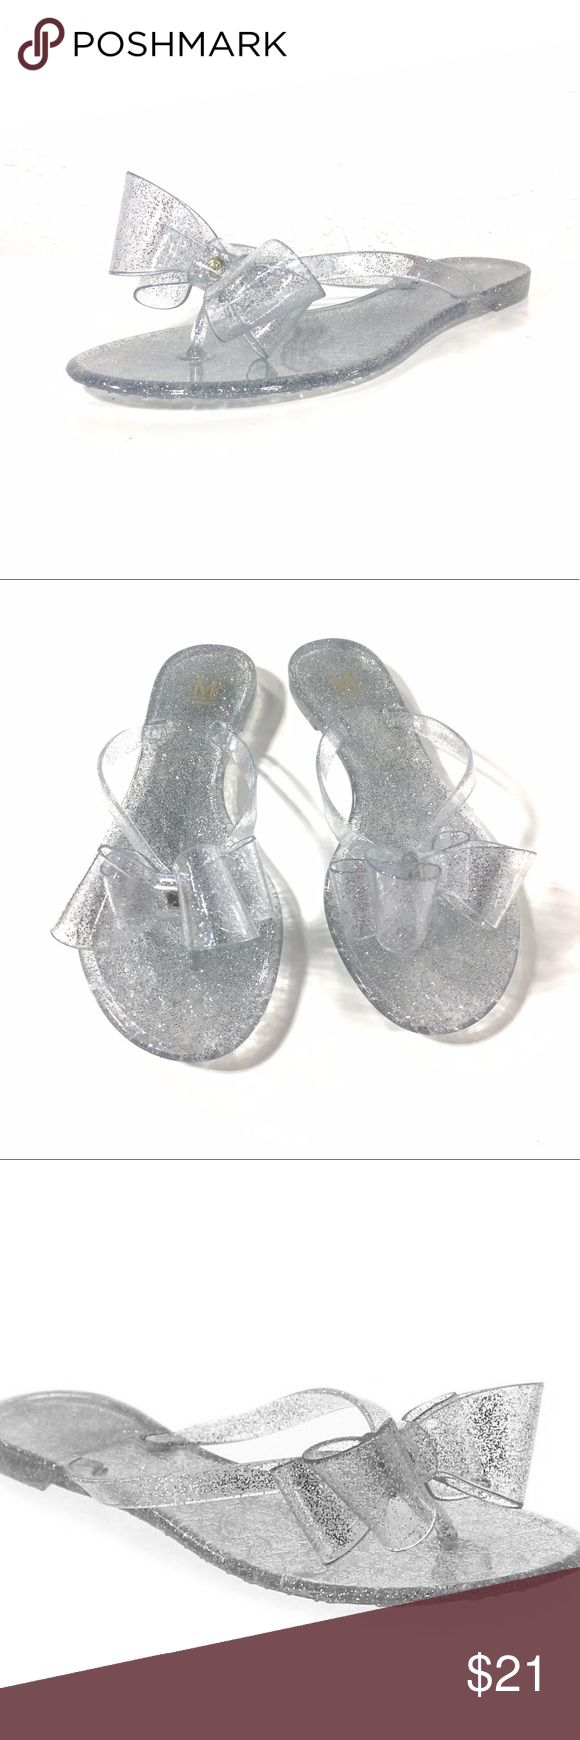 Maker's Shoes Clear Jelly Silver Flip Flops Cool and clear! These jelly flip flop sandals are a must have for the summer. Medium width and true to size. Also available in gold, please see other listing. Maker's Shoes Shoes Sandals